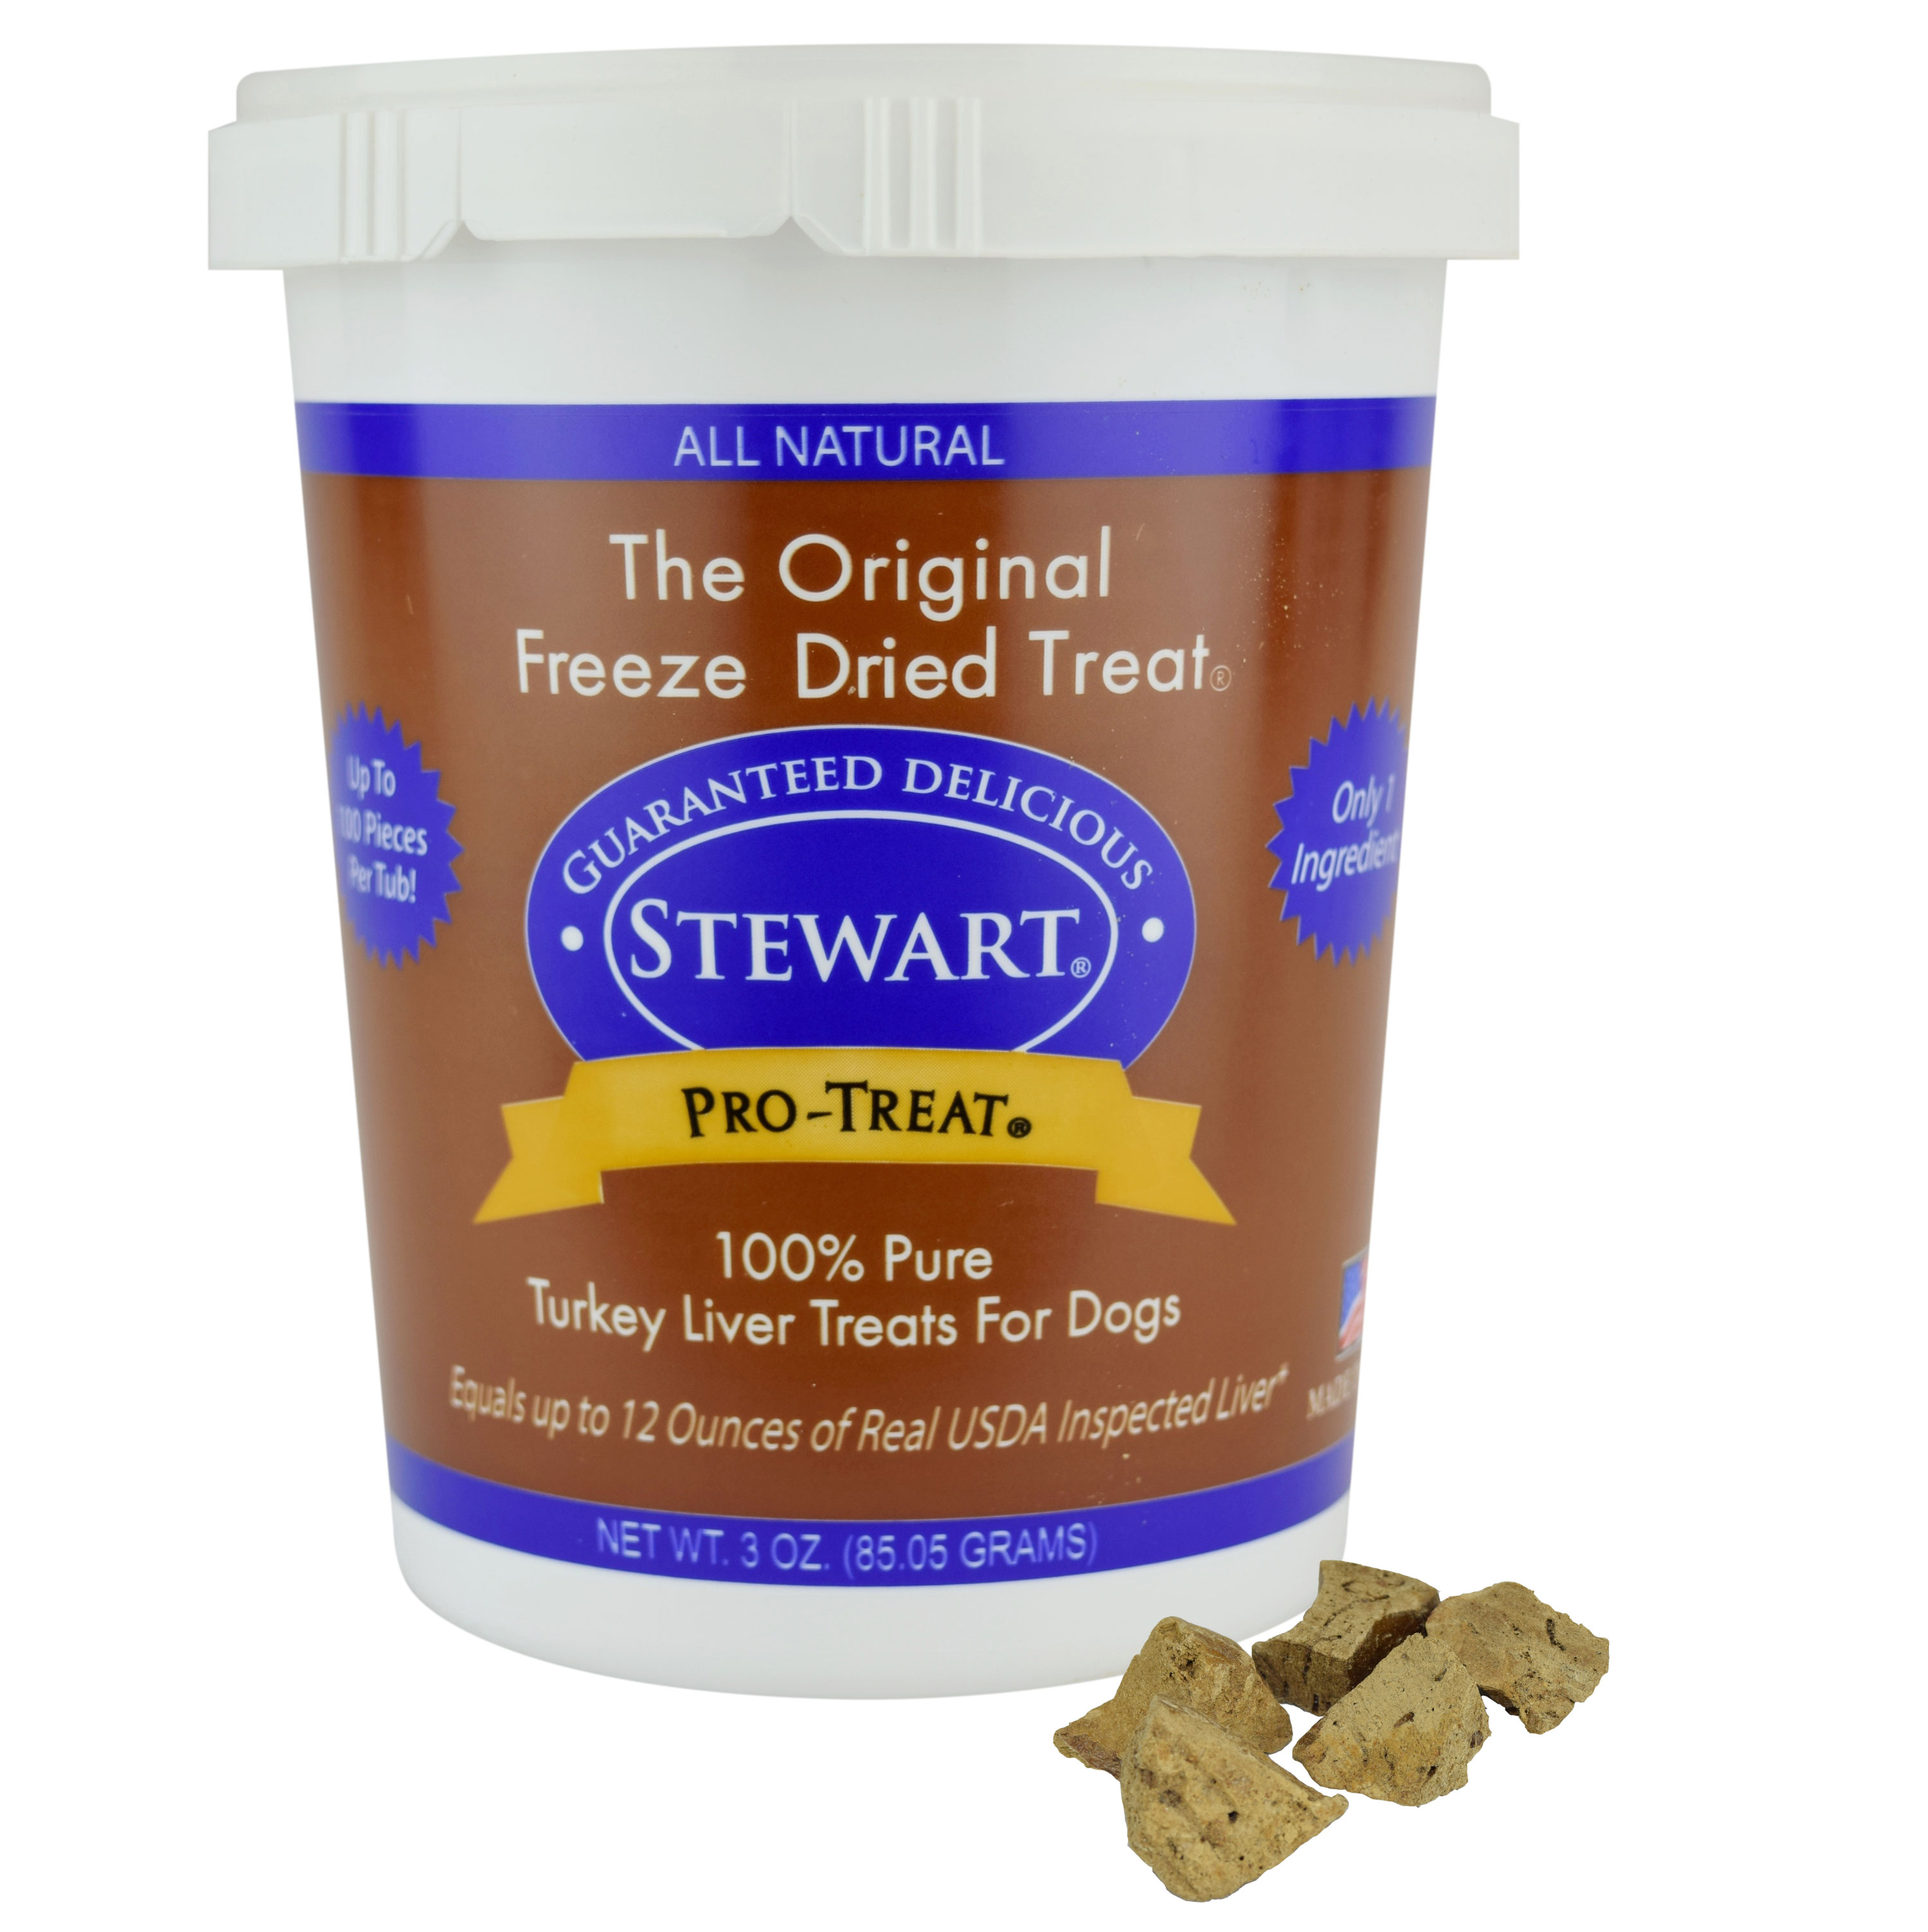 Stewart Freeze Dried Turkey Liver Dog Treats by Pro-Treat, 3 oz. Tub